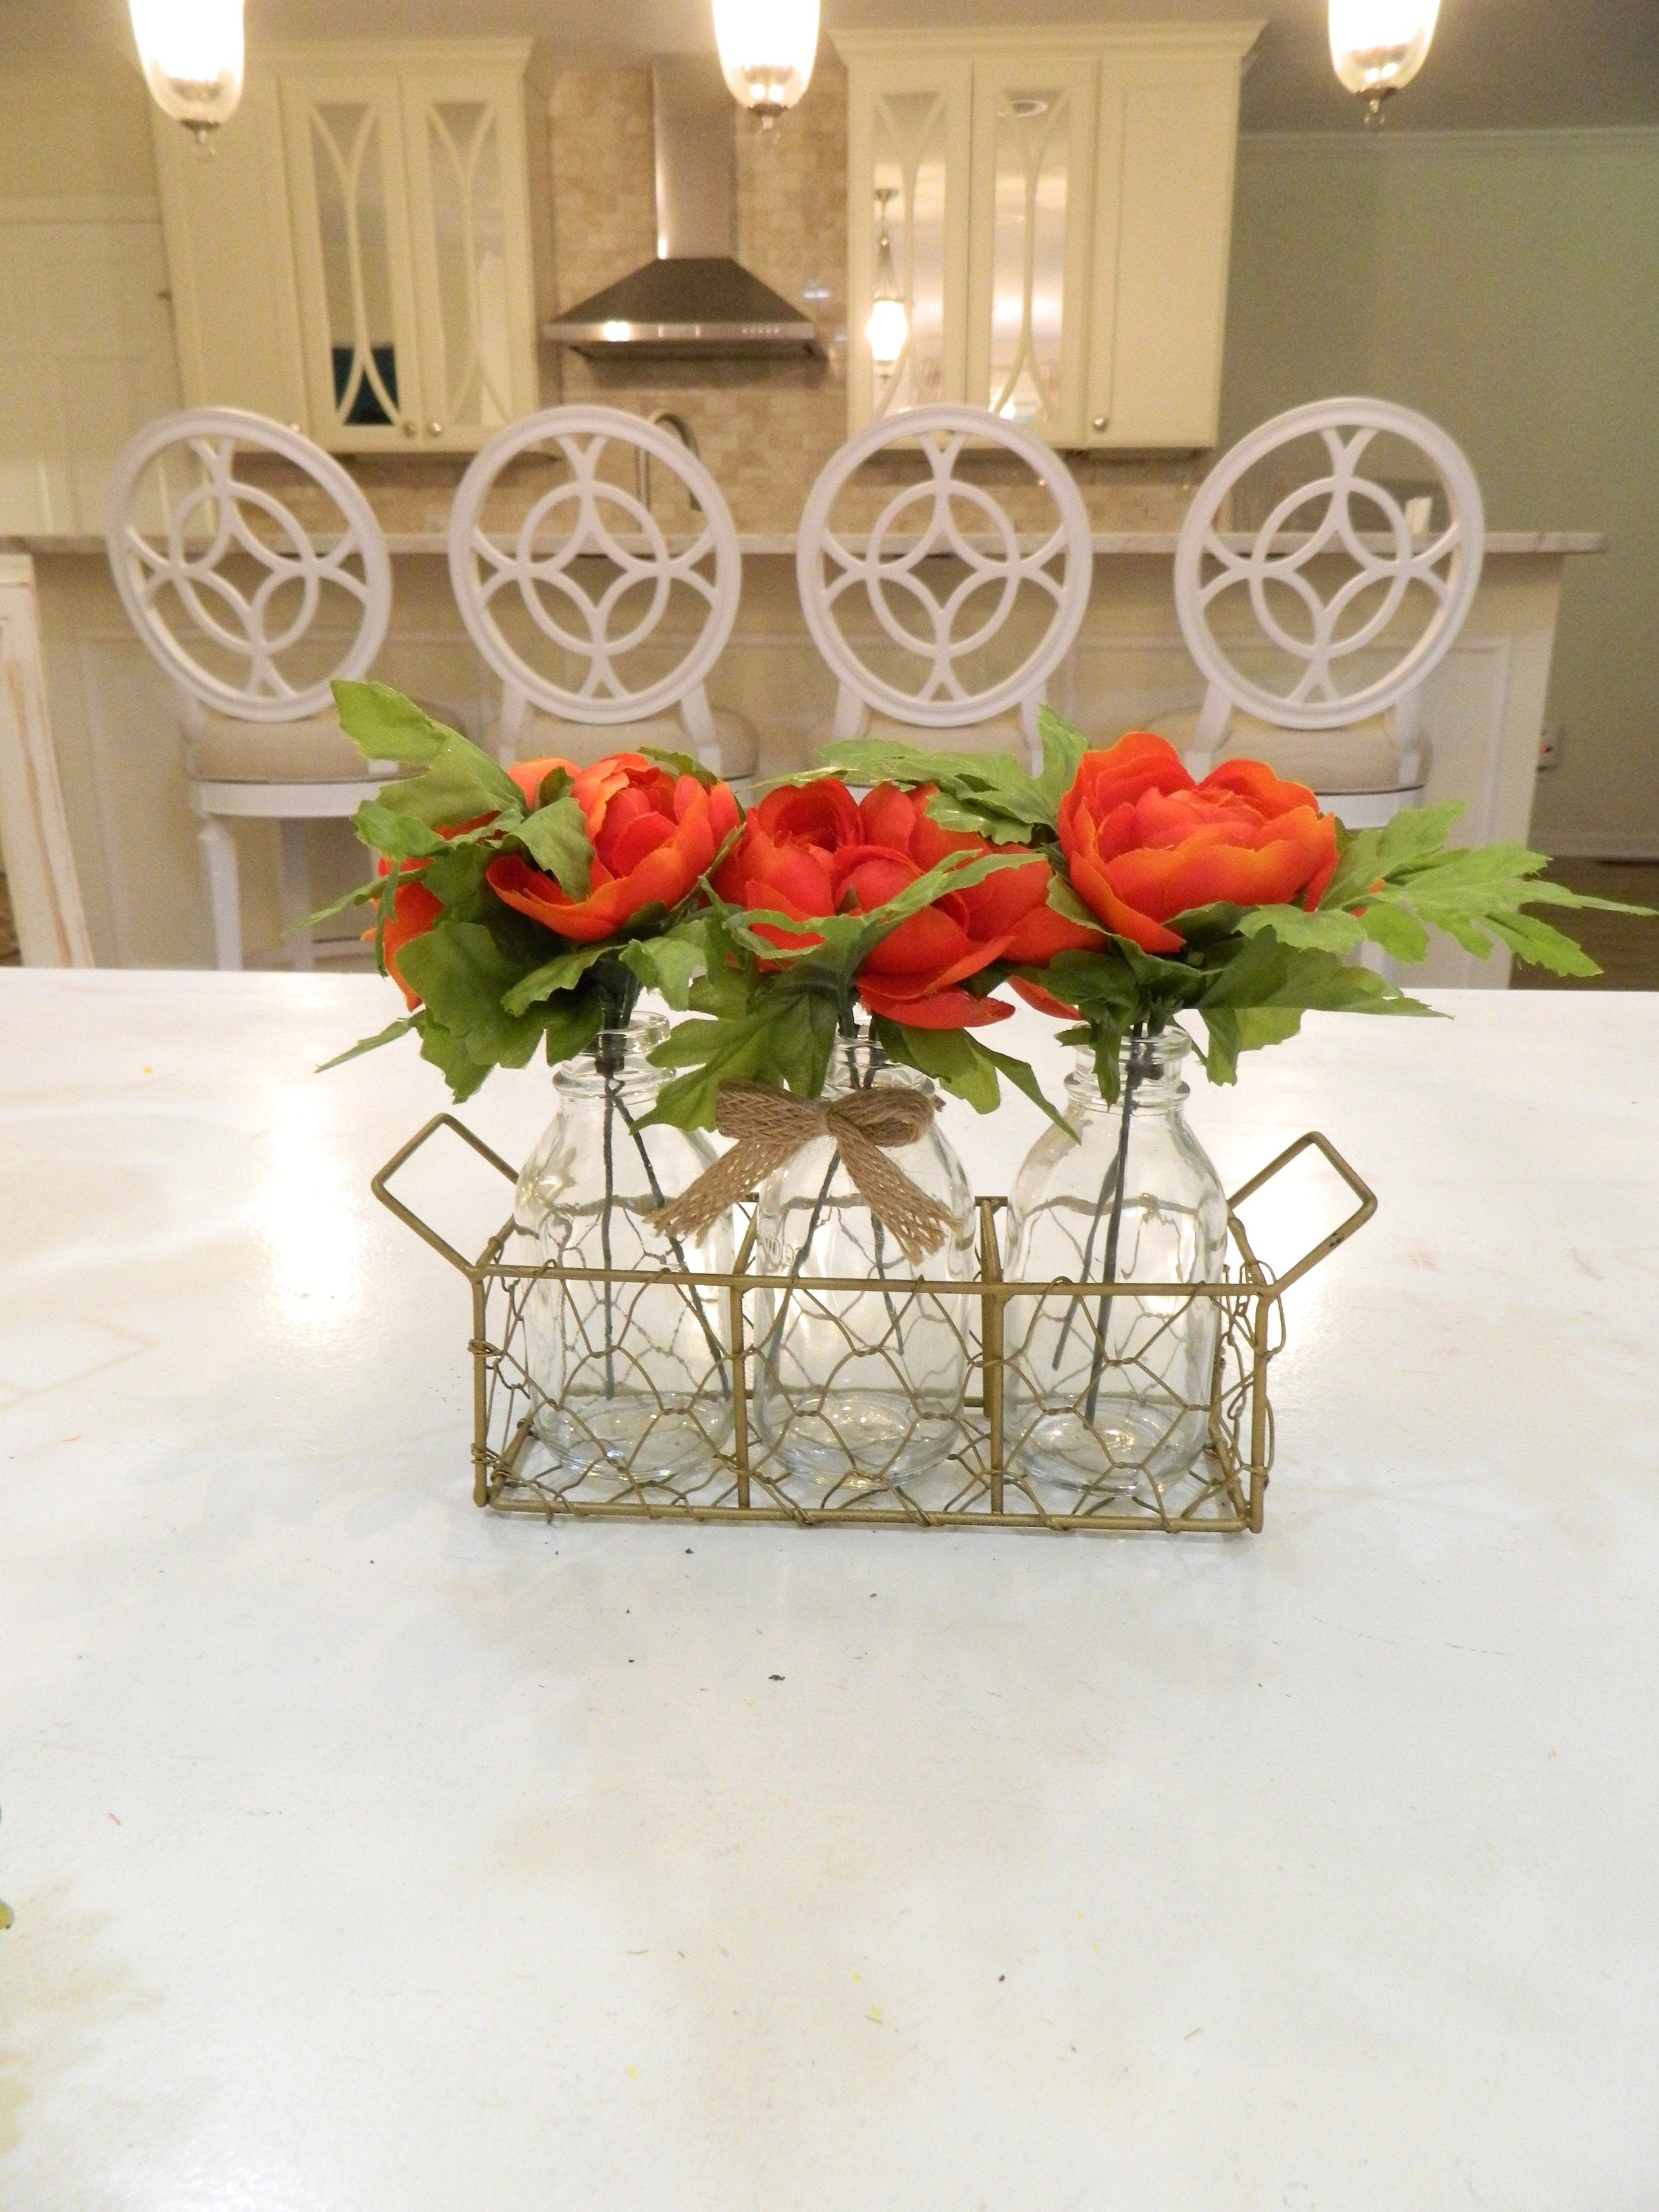 Triple Vase Centerpiece - Floral Vase - Chicken Wire Container - Floral Arrangement